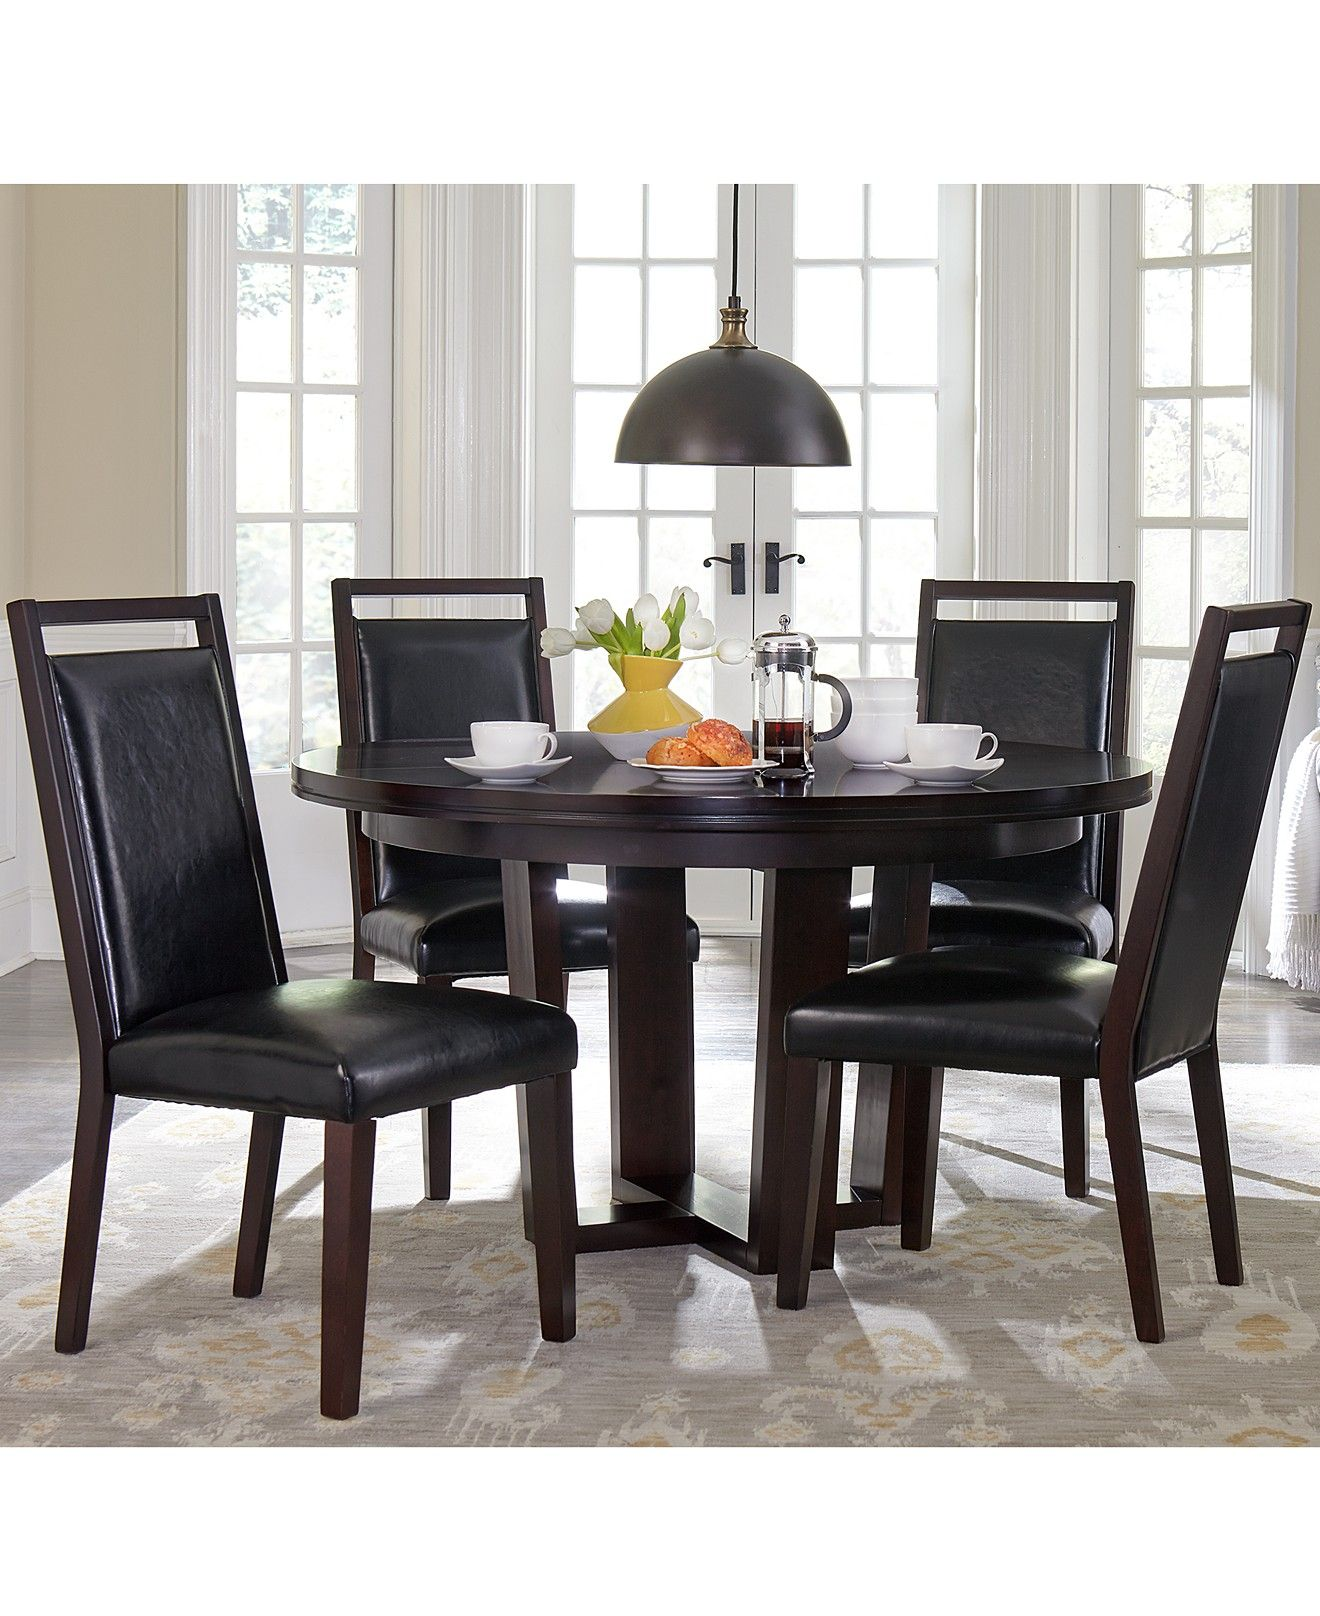 Belaire Round Dining Black Furniture Collection